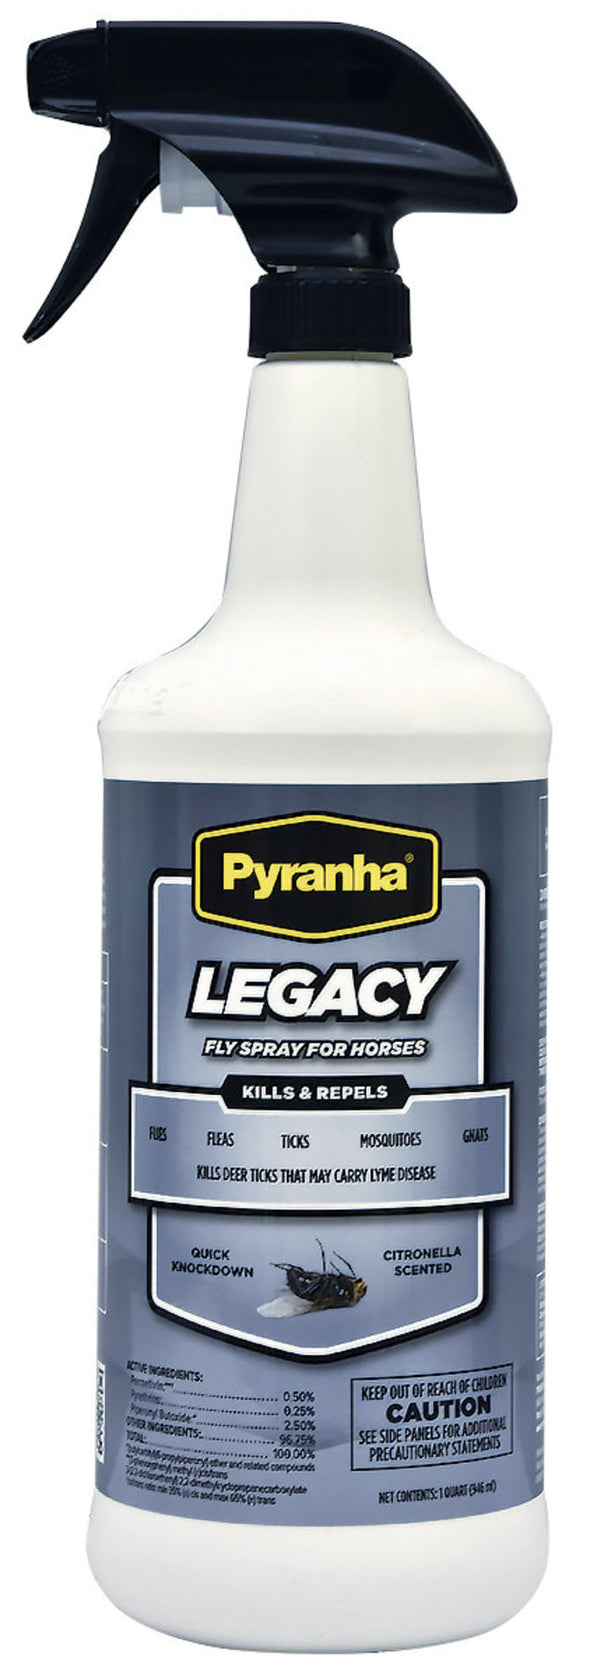 Pyranha Legacy Fly Spray